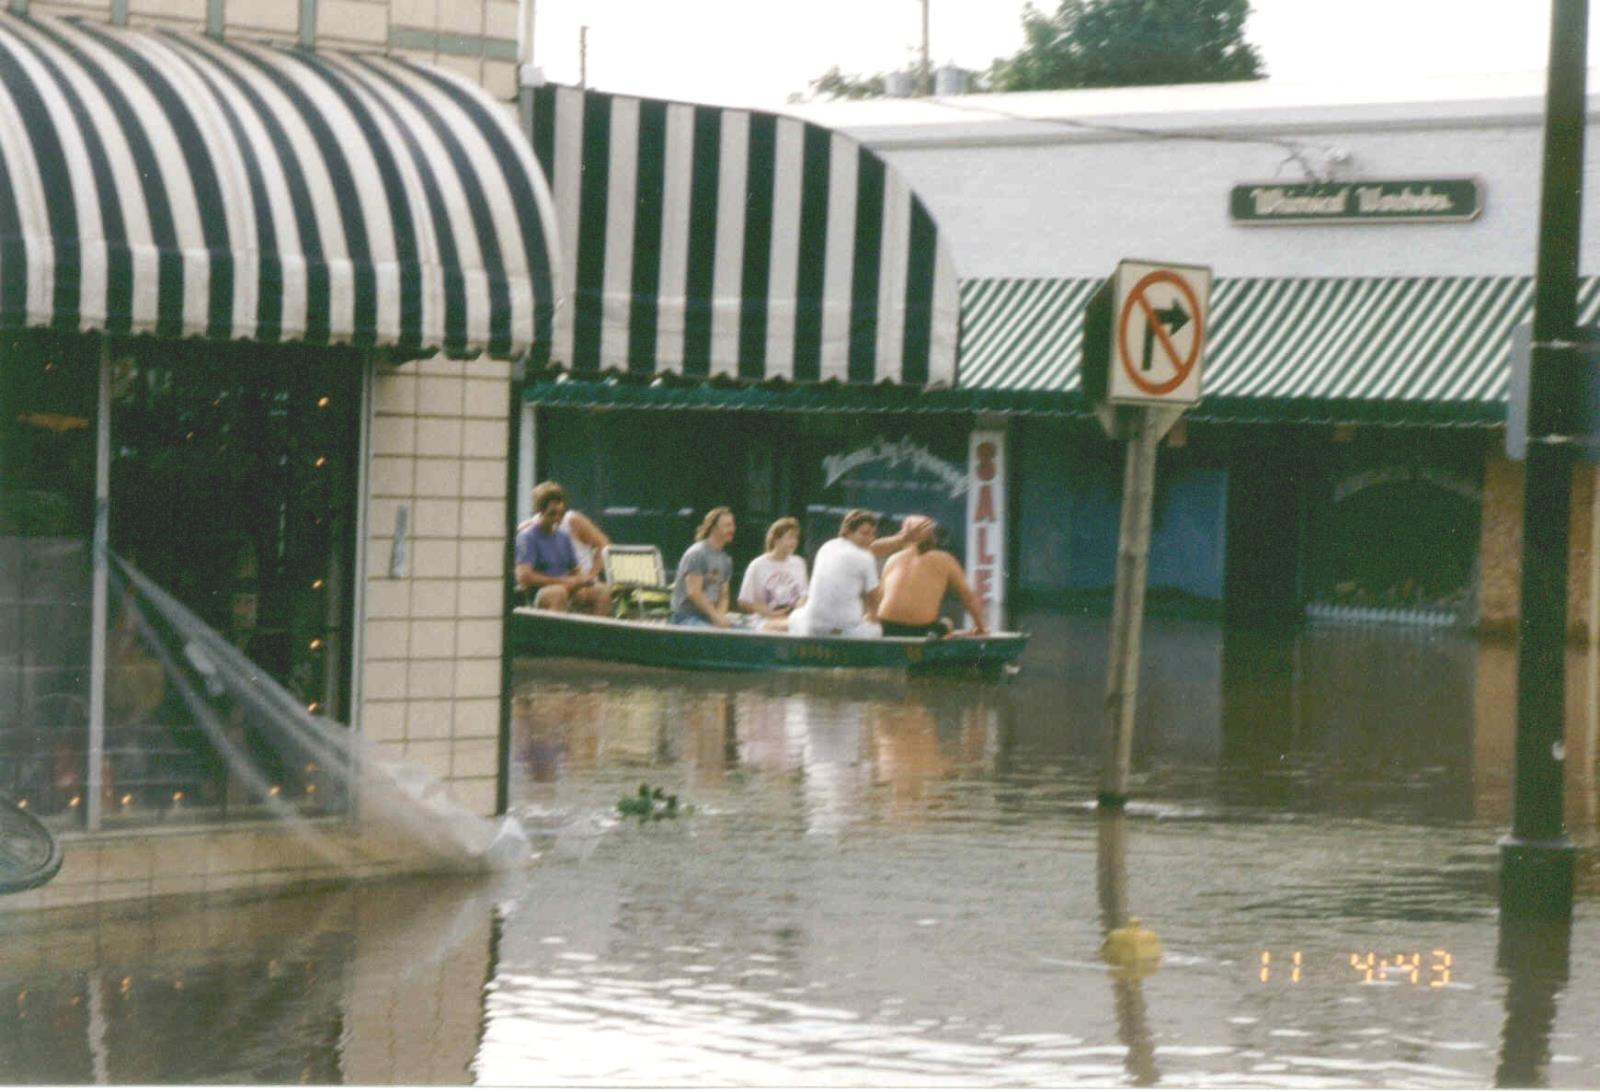 1993_Flood_5th St View NW towards Elm St